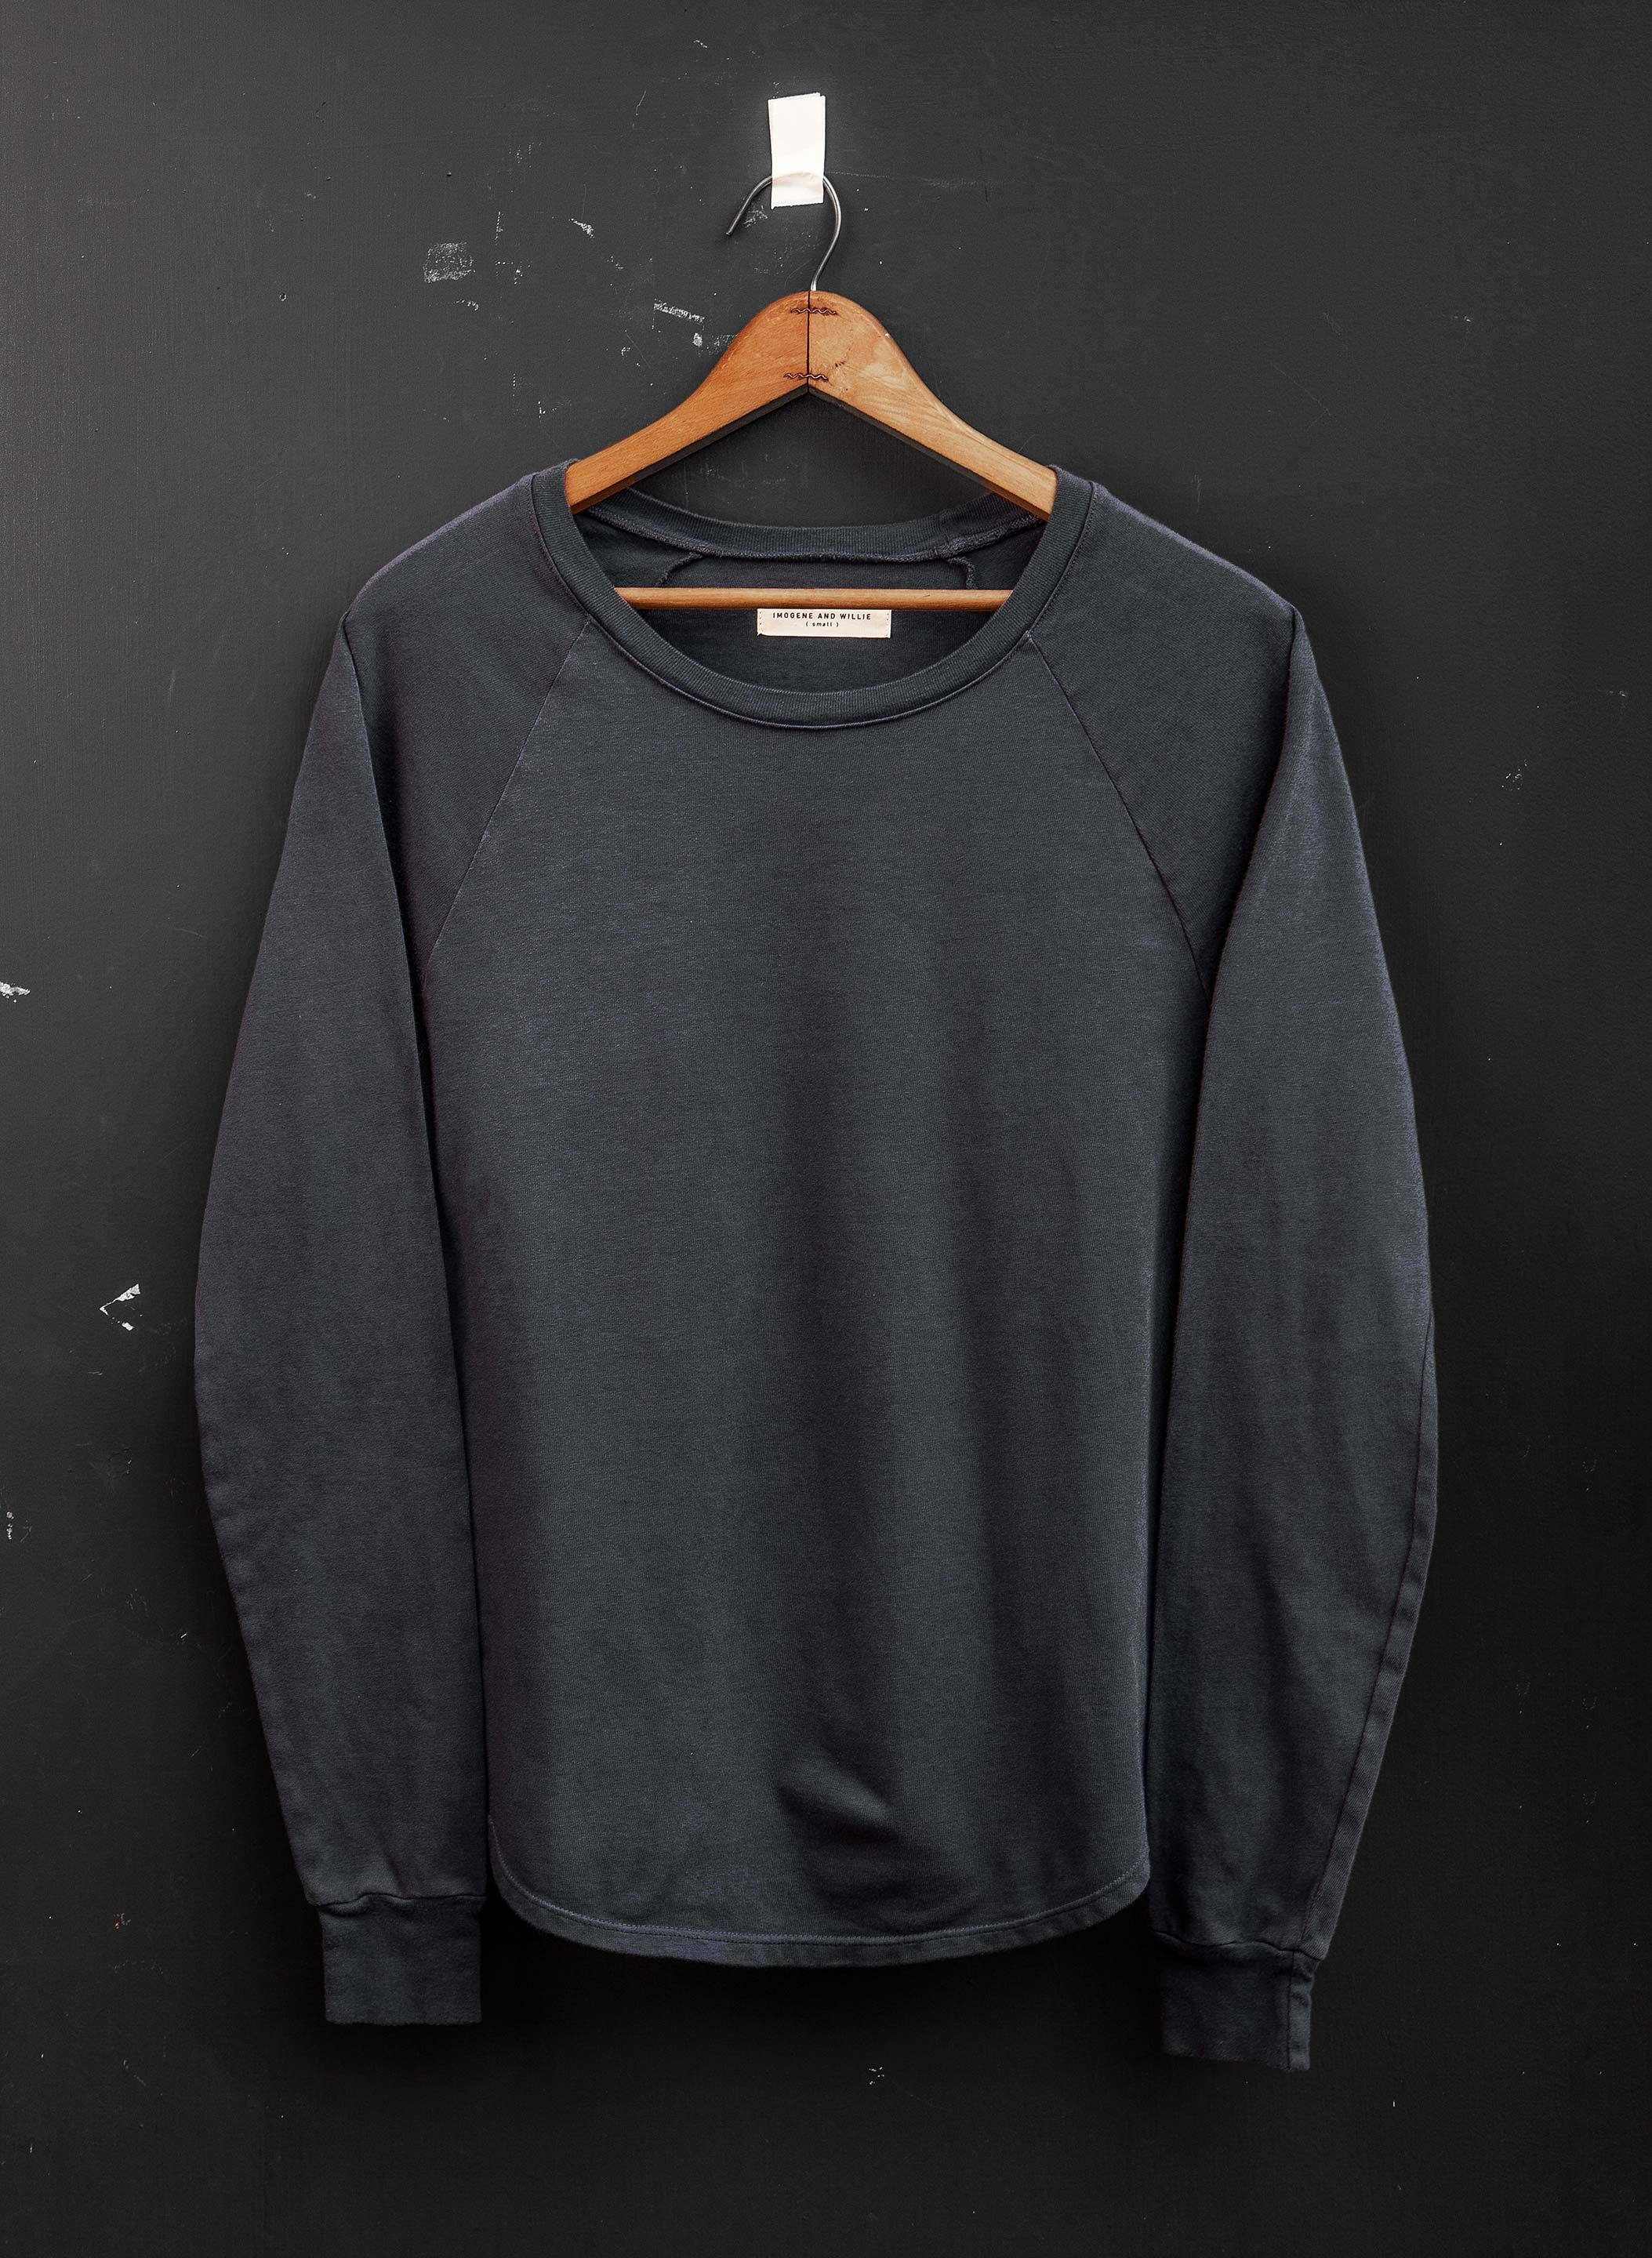 imogene + willie - long sleeve raglan in graphite